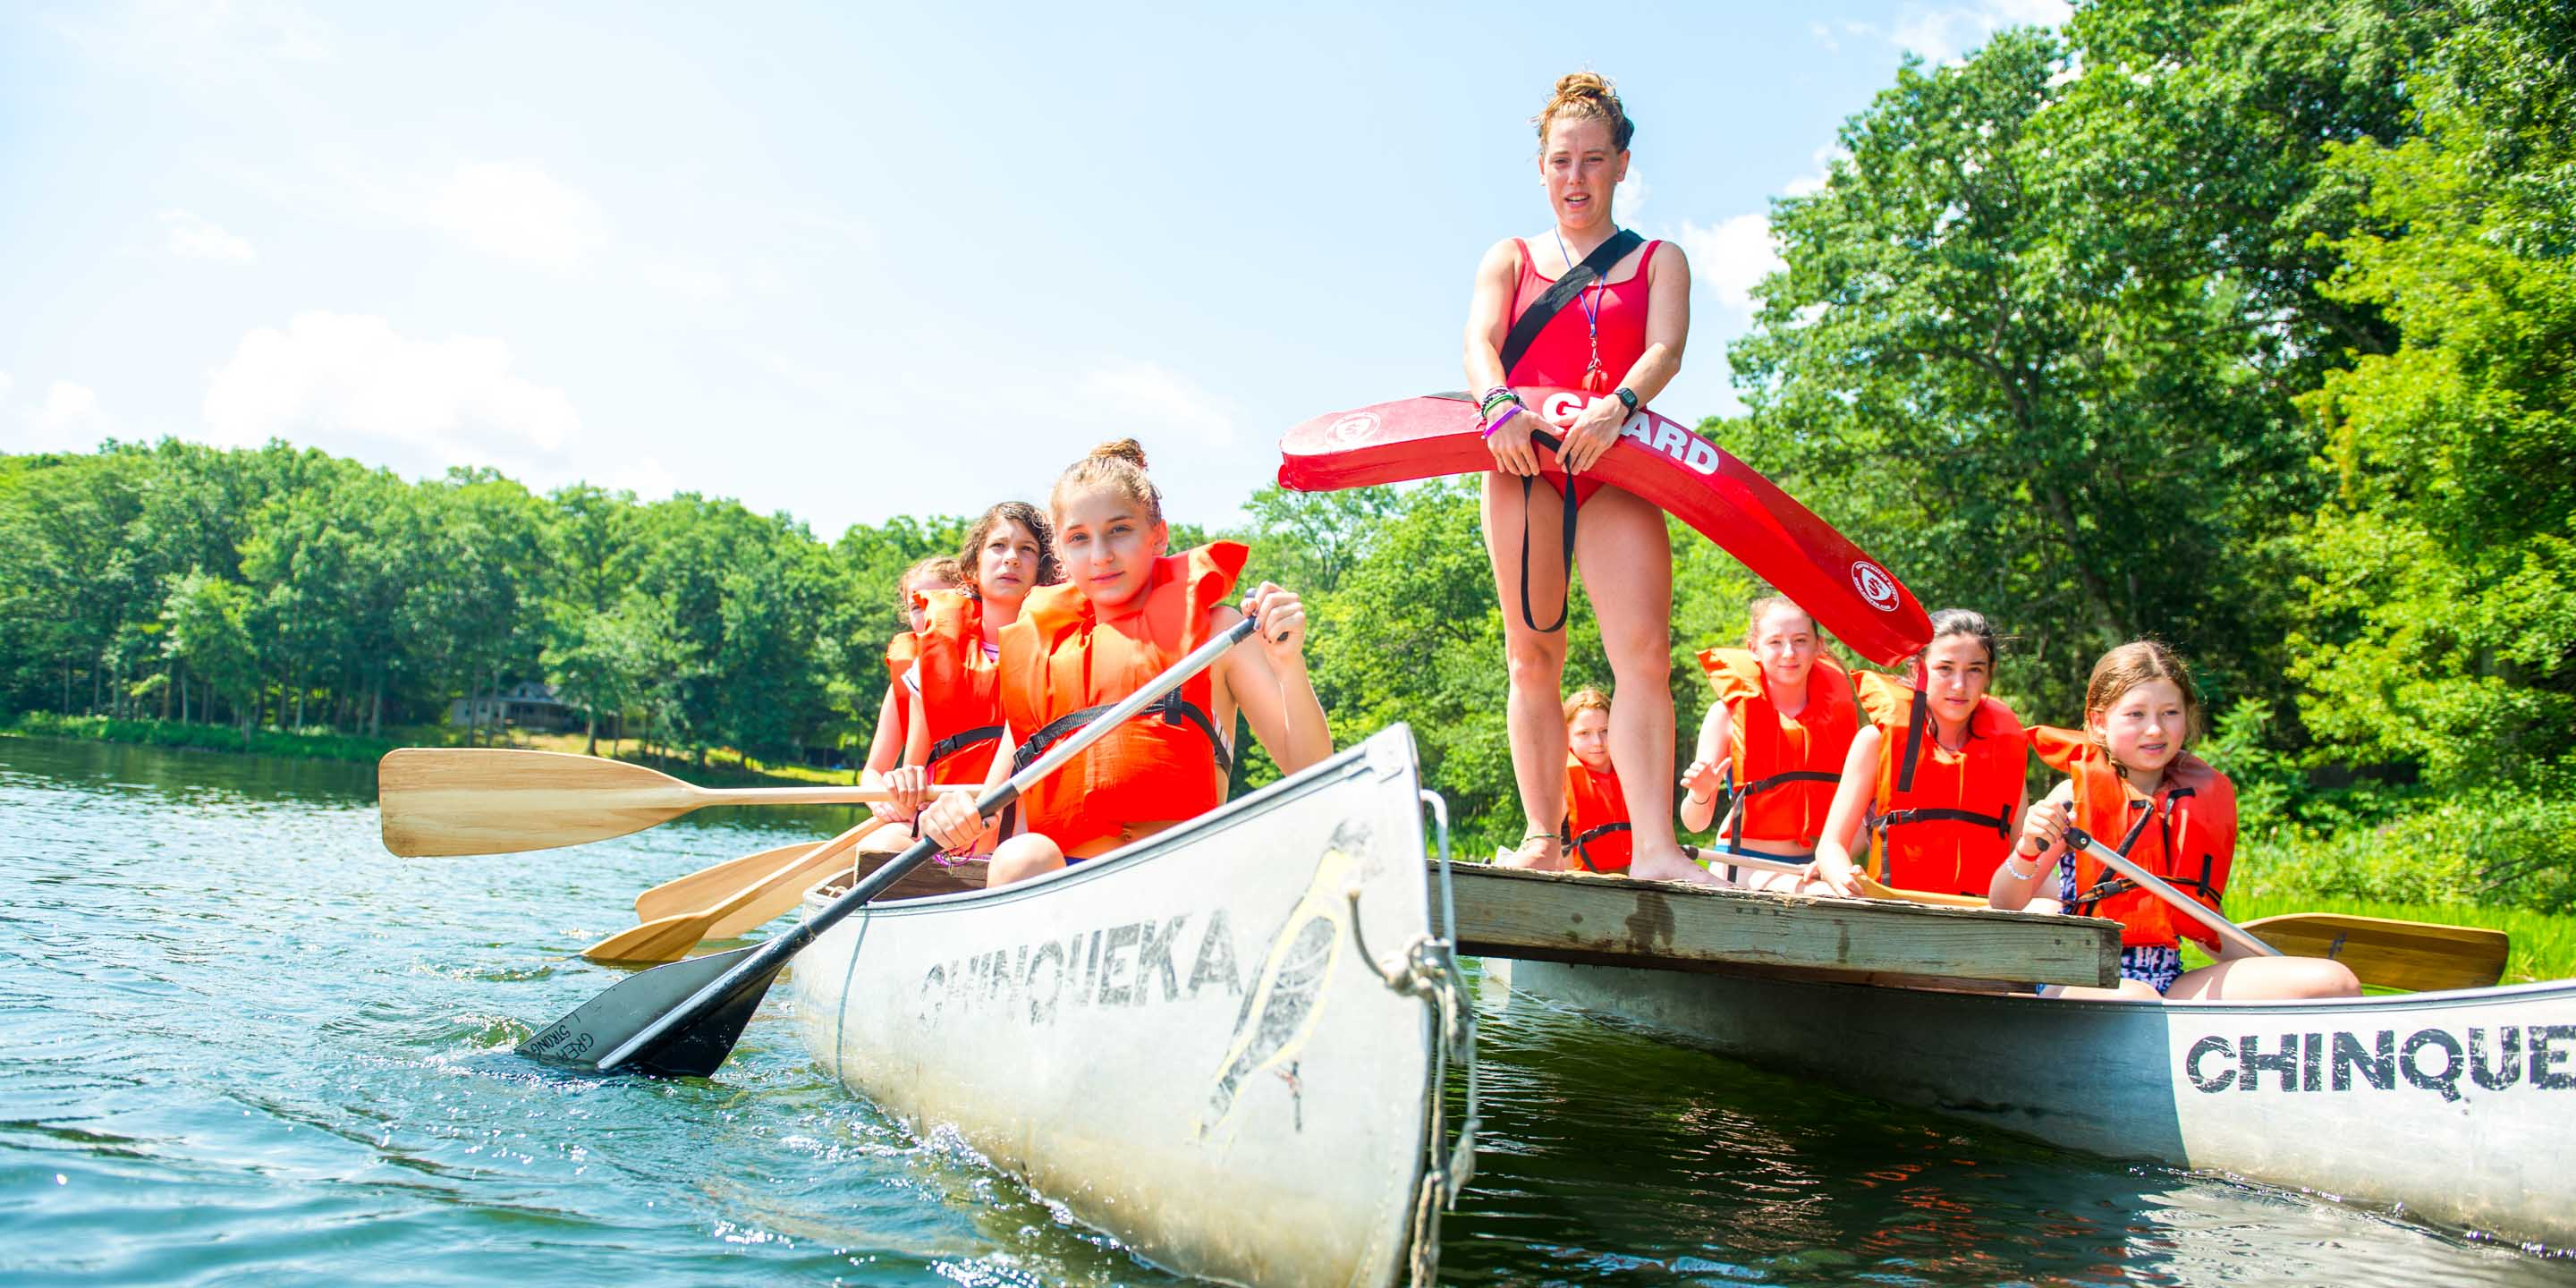 Life guard stands on canoe paddled by campers